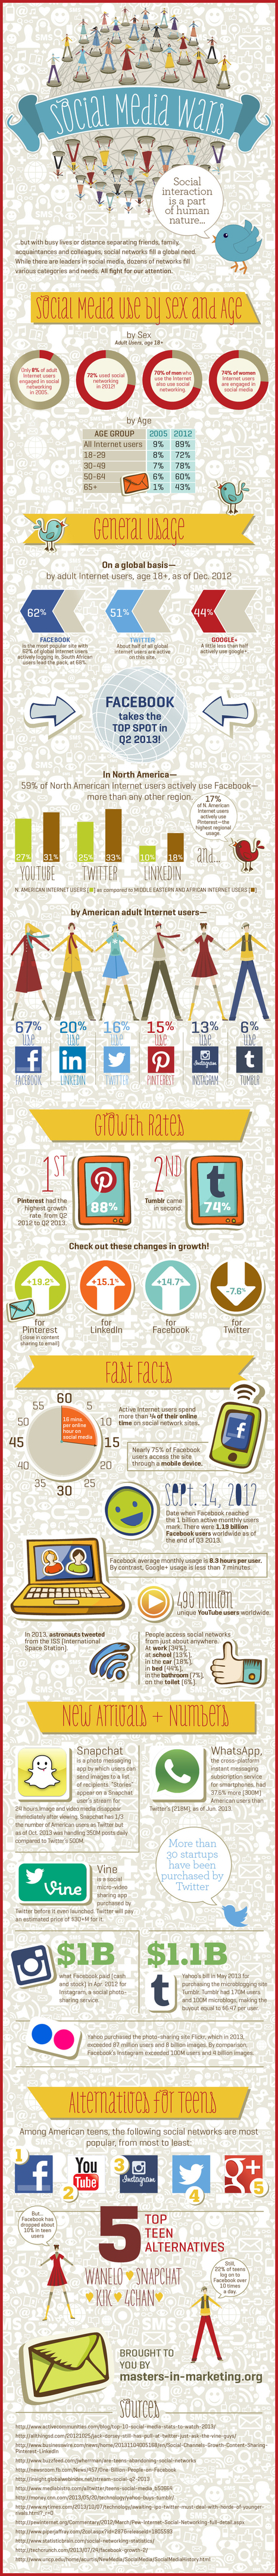 The Social Media Wars [INFOGRAPHIC] - DashBurst | Social Media and Web Infographics hh | Scoop.it